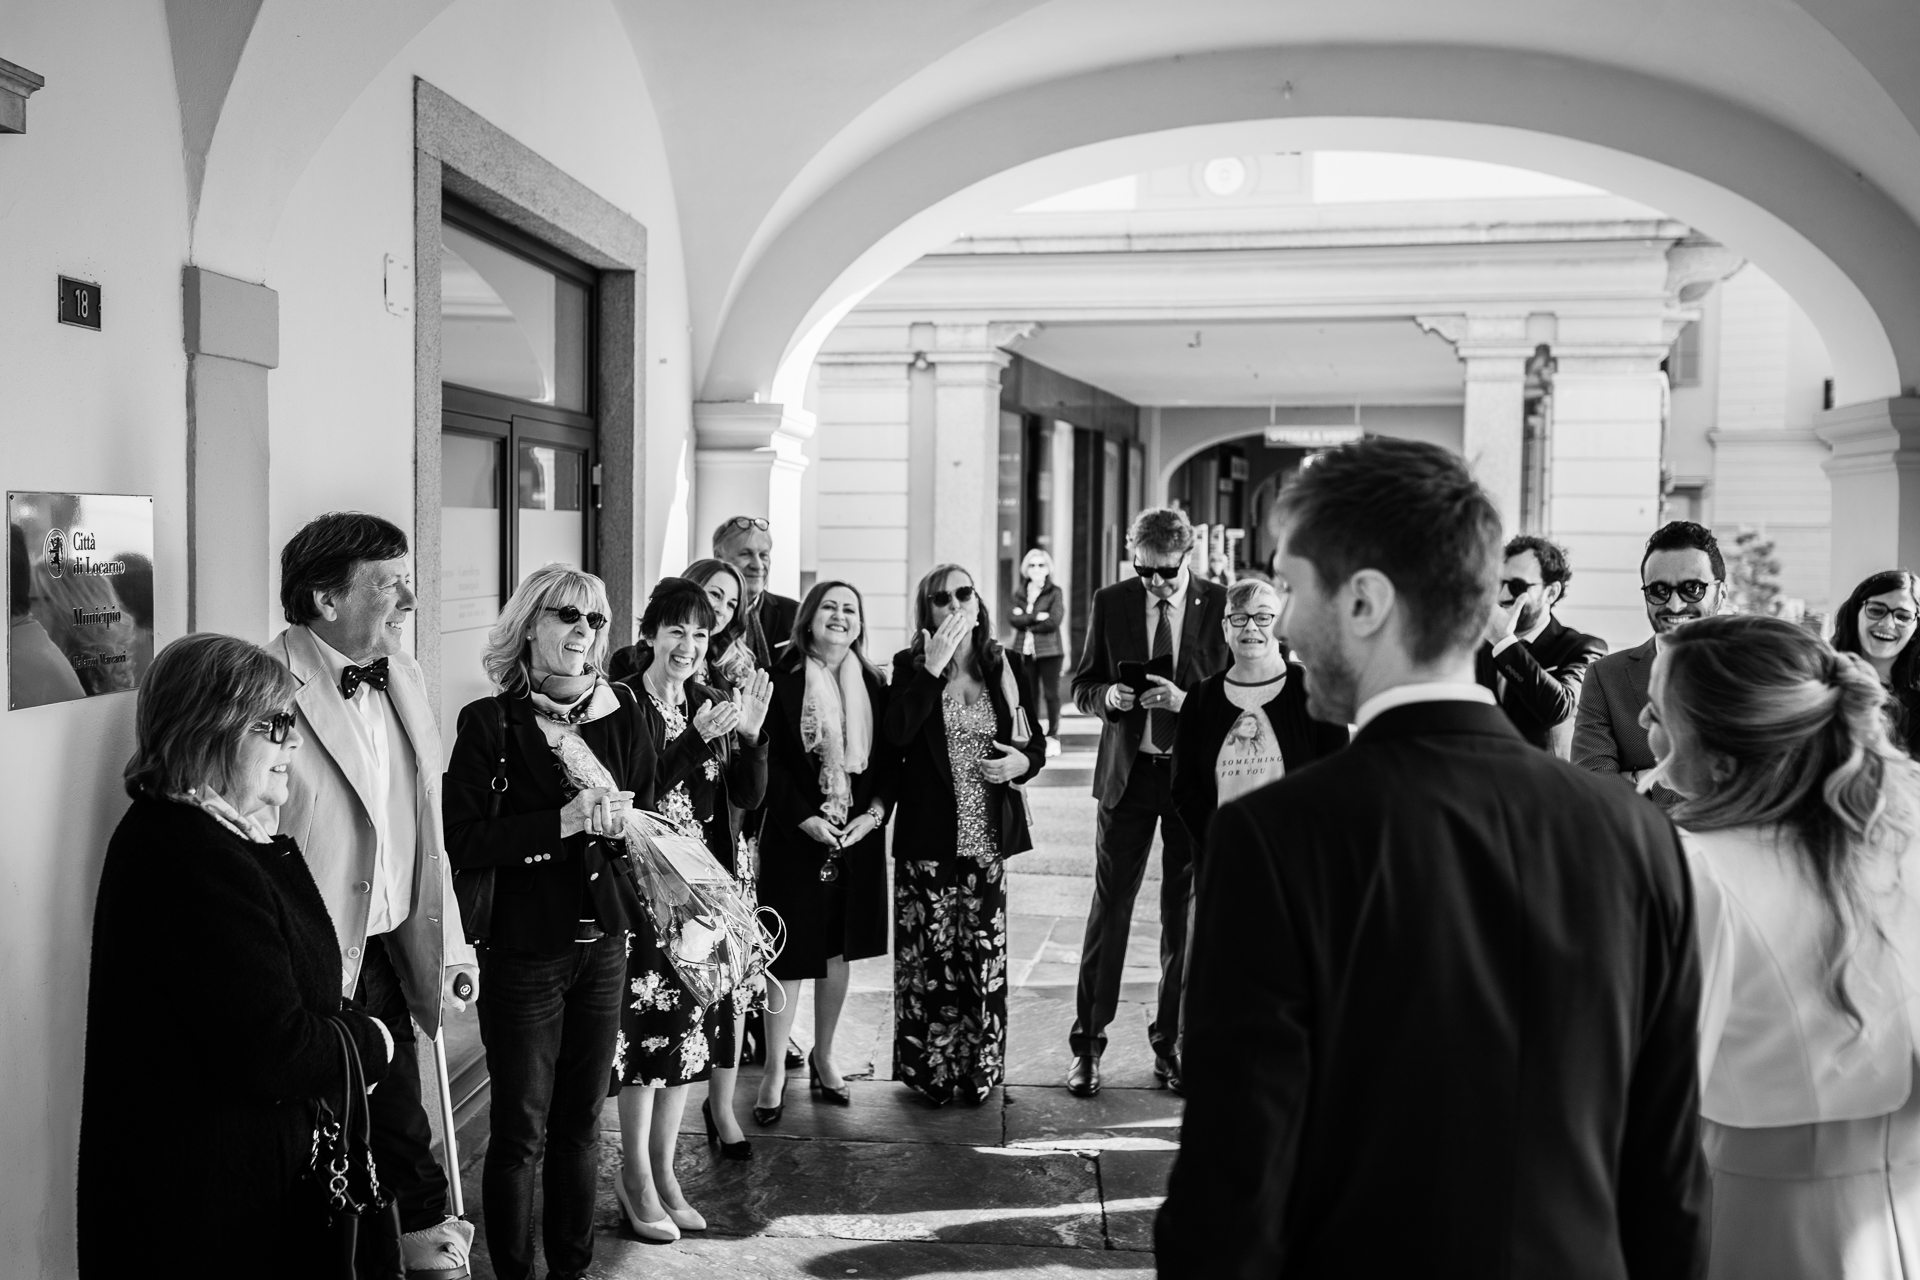 Locarno Switzerland Elopement Ceremony Photographer | A crowd of family and friends greets the smiling couple